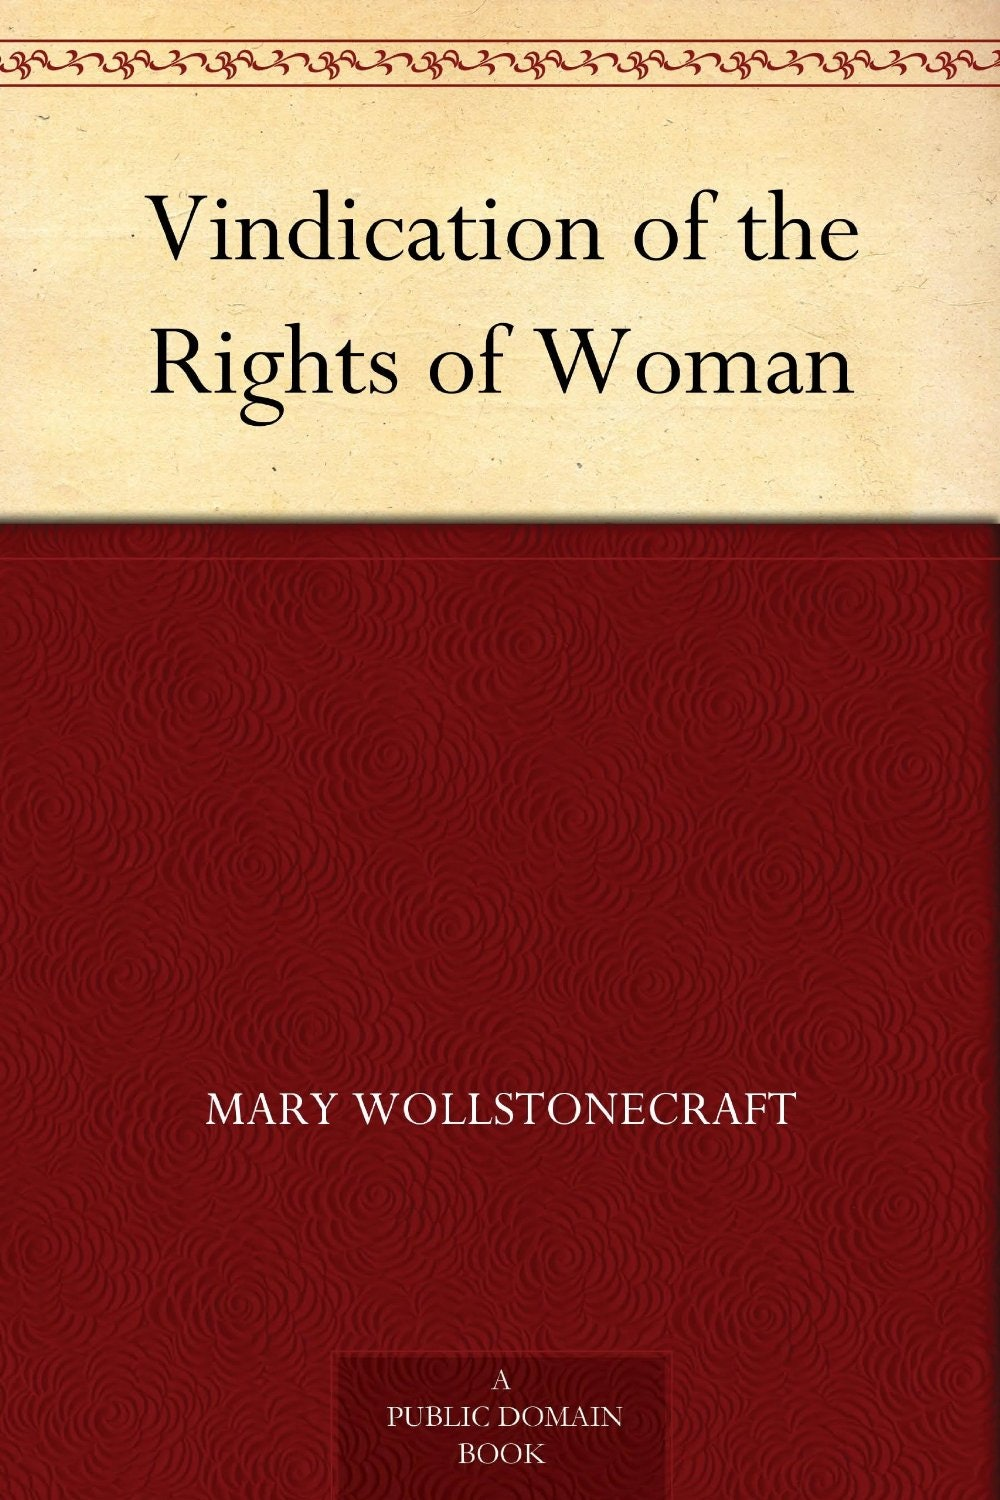 books every feminist should from mary wollstonecraft to 69 books every feminist should from mary wollstonecraft to roxane gay